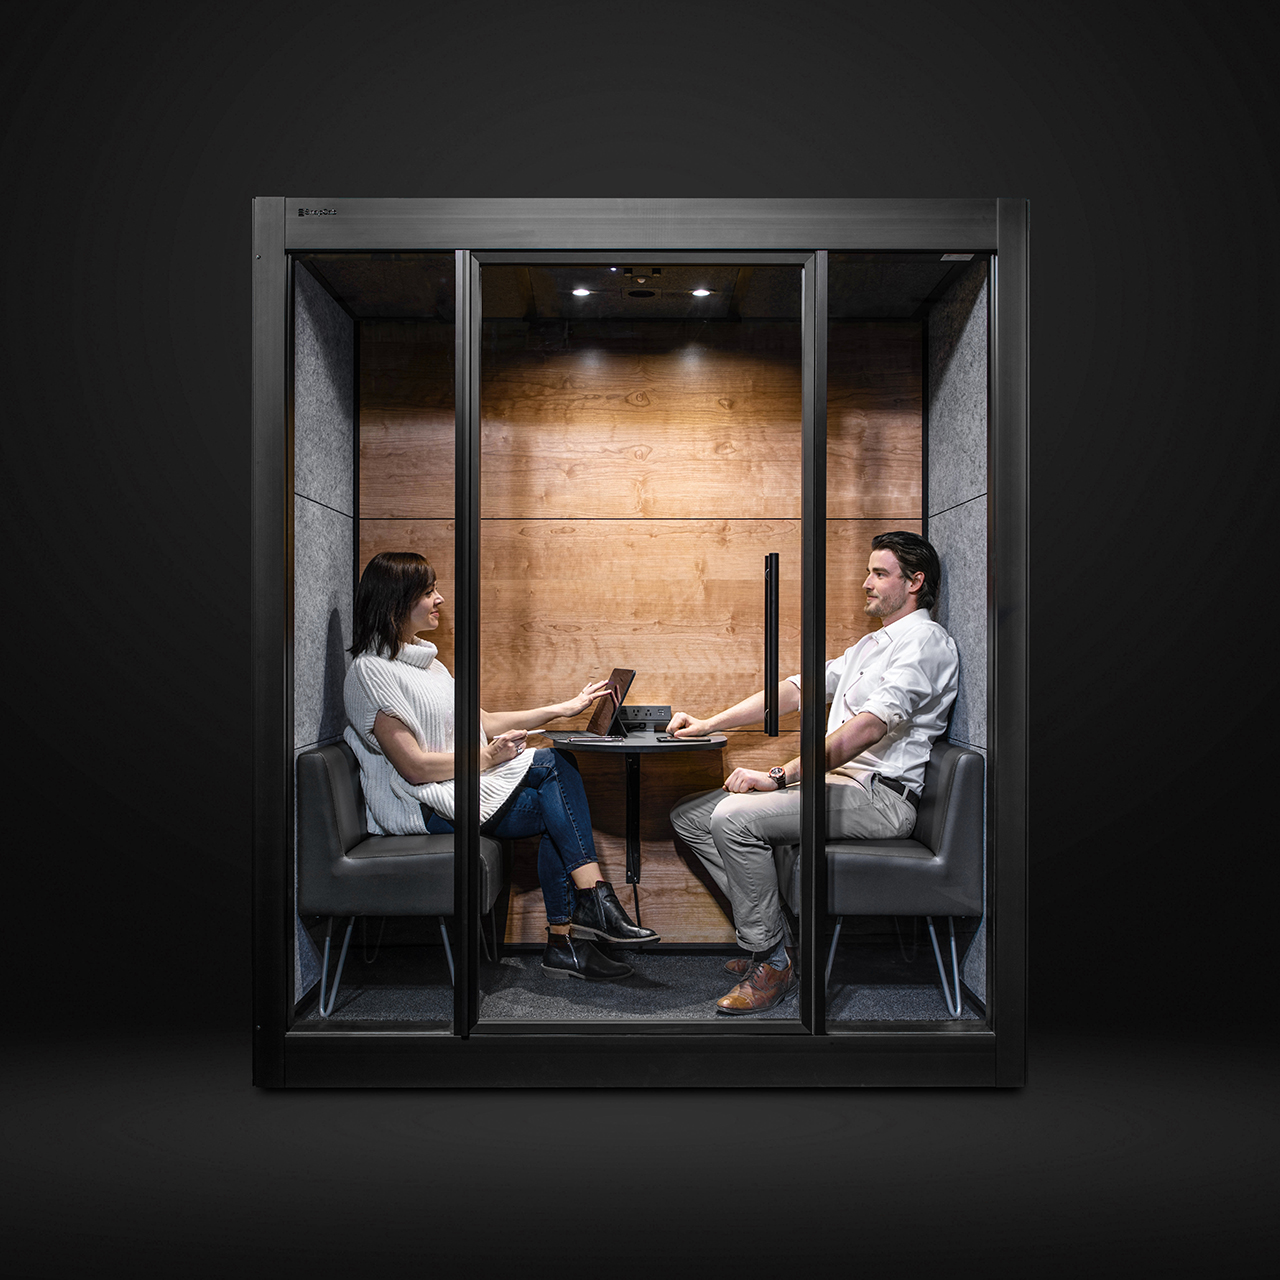 workspace pod with two people inside on dark background